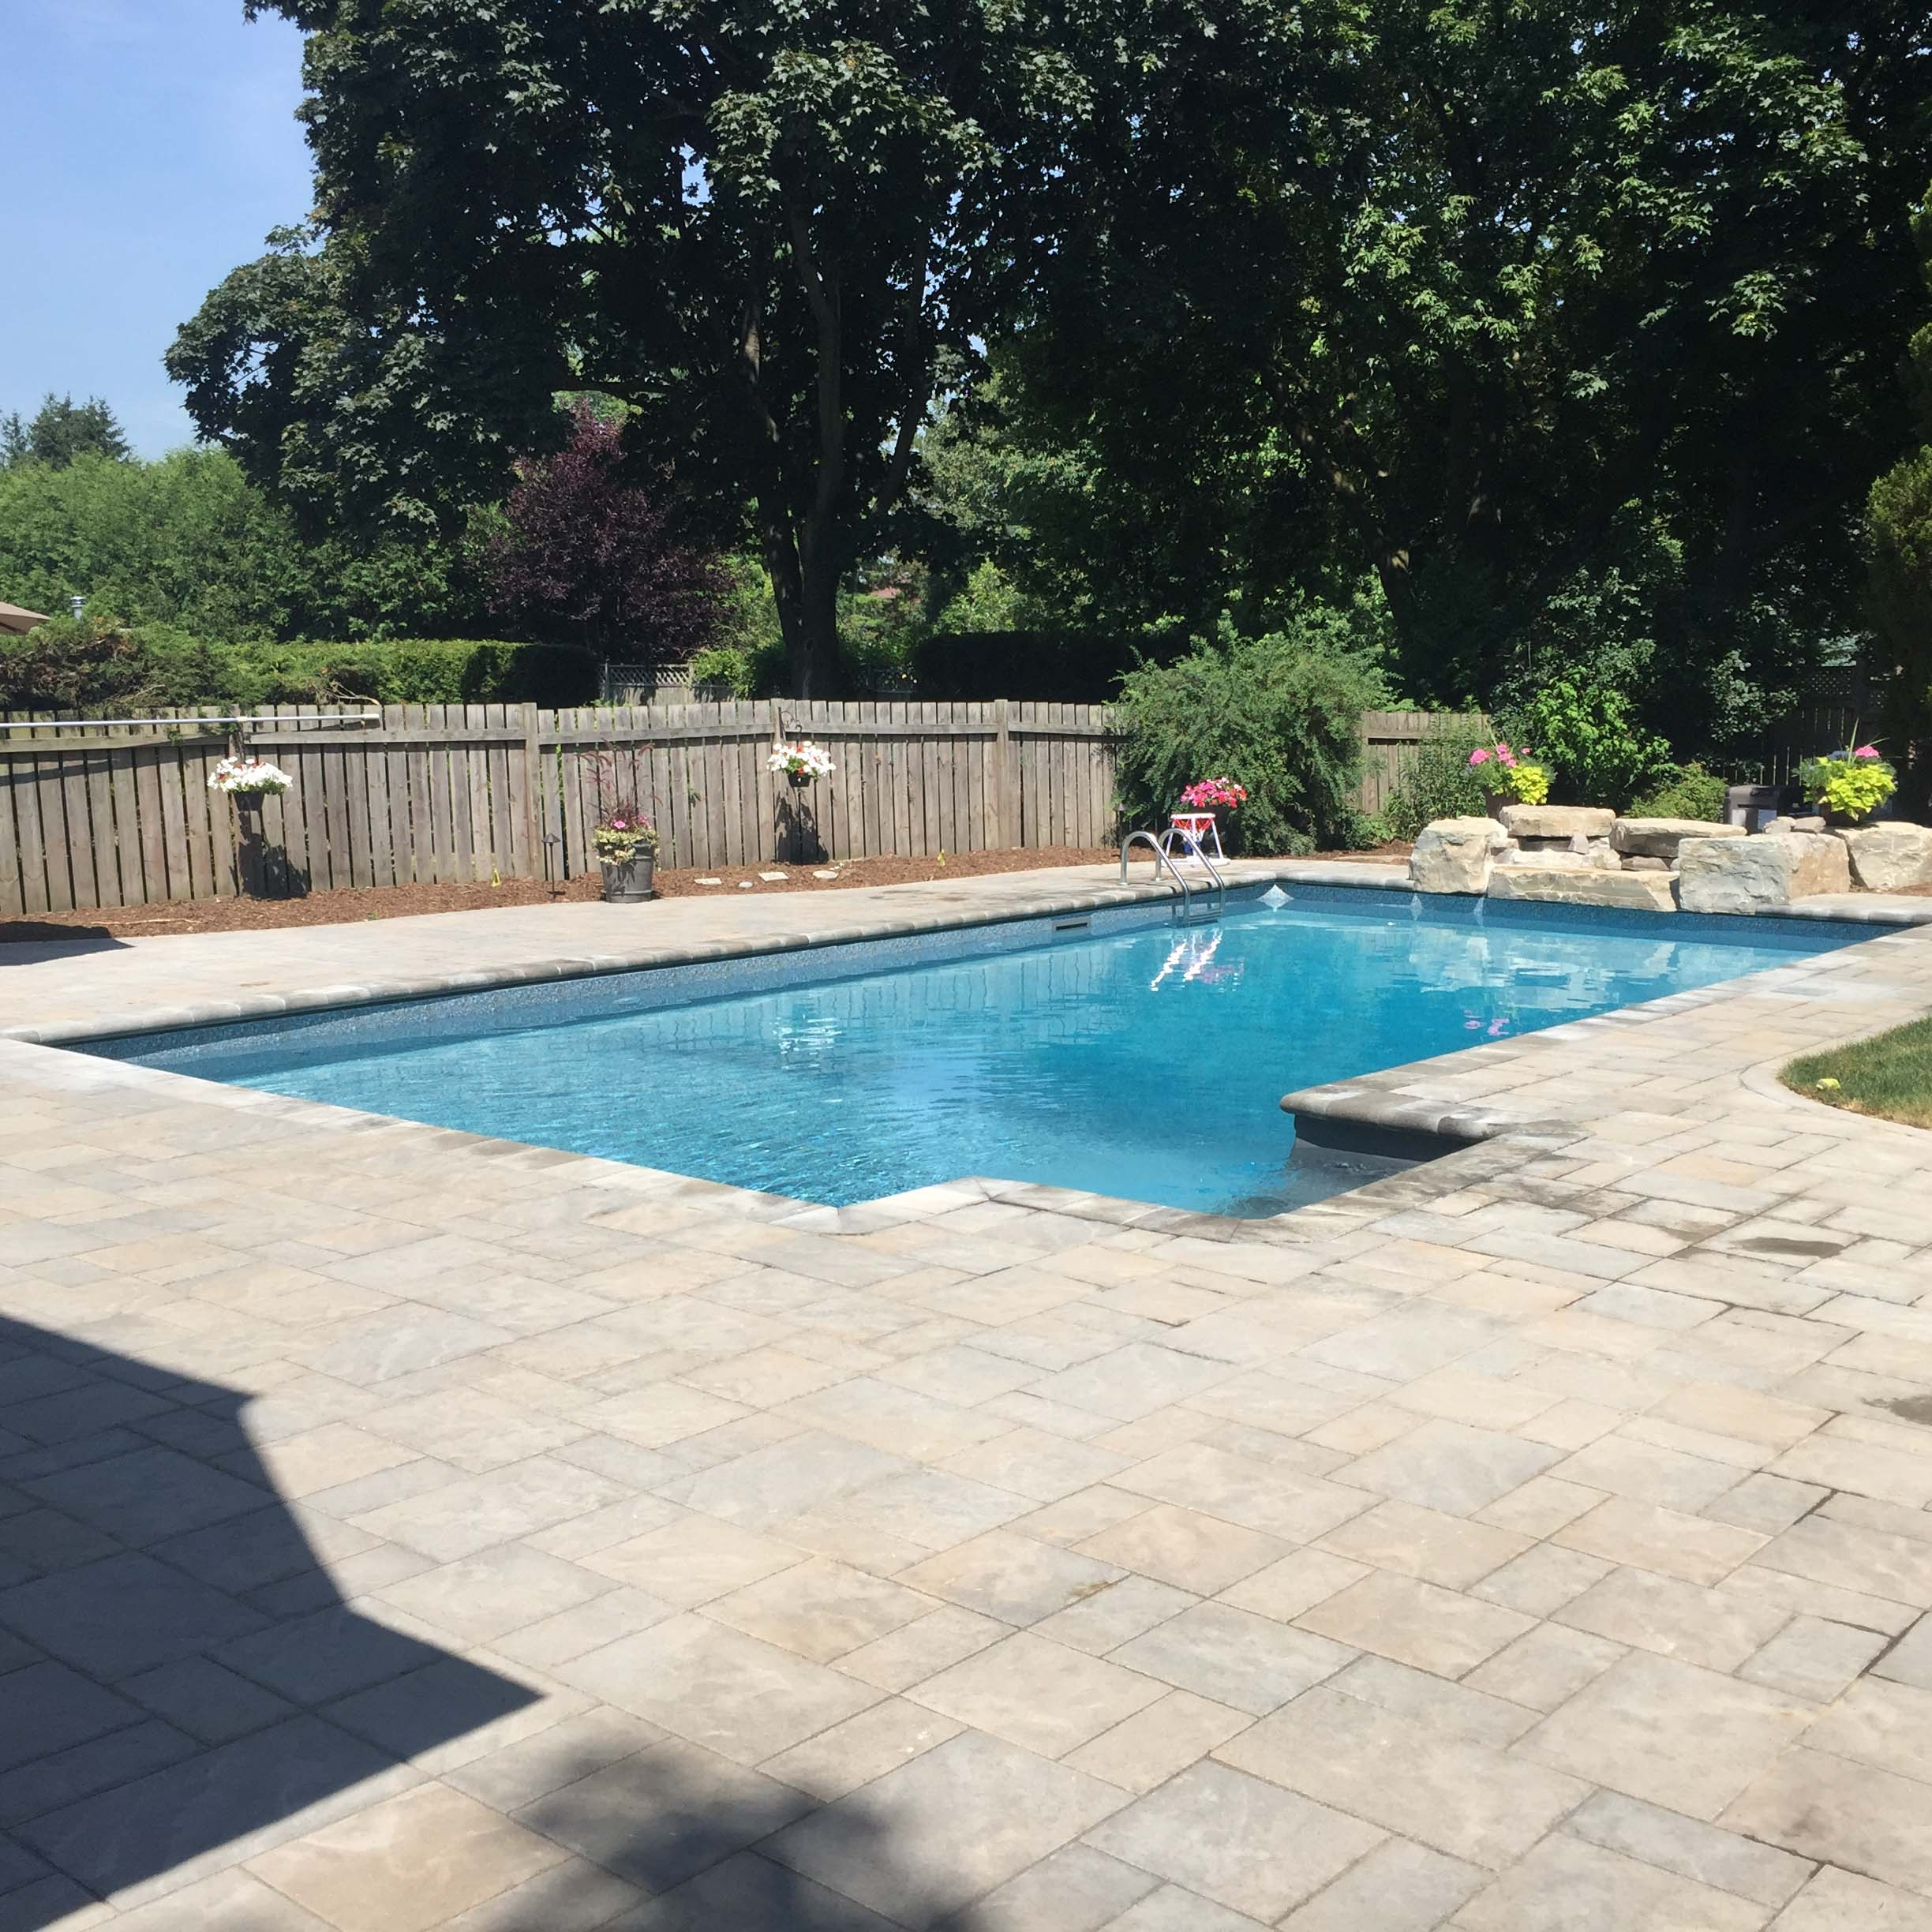 Pool remodeling pool deck renovations kdp landscaping for Pool redesign